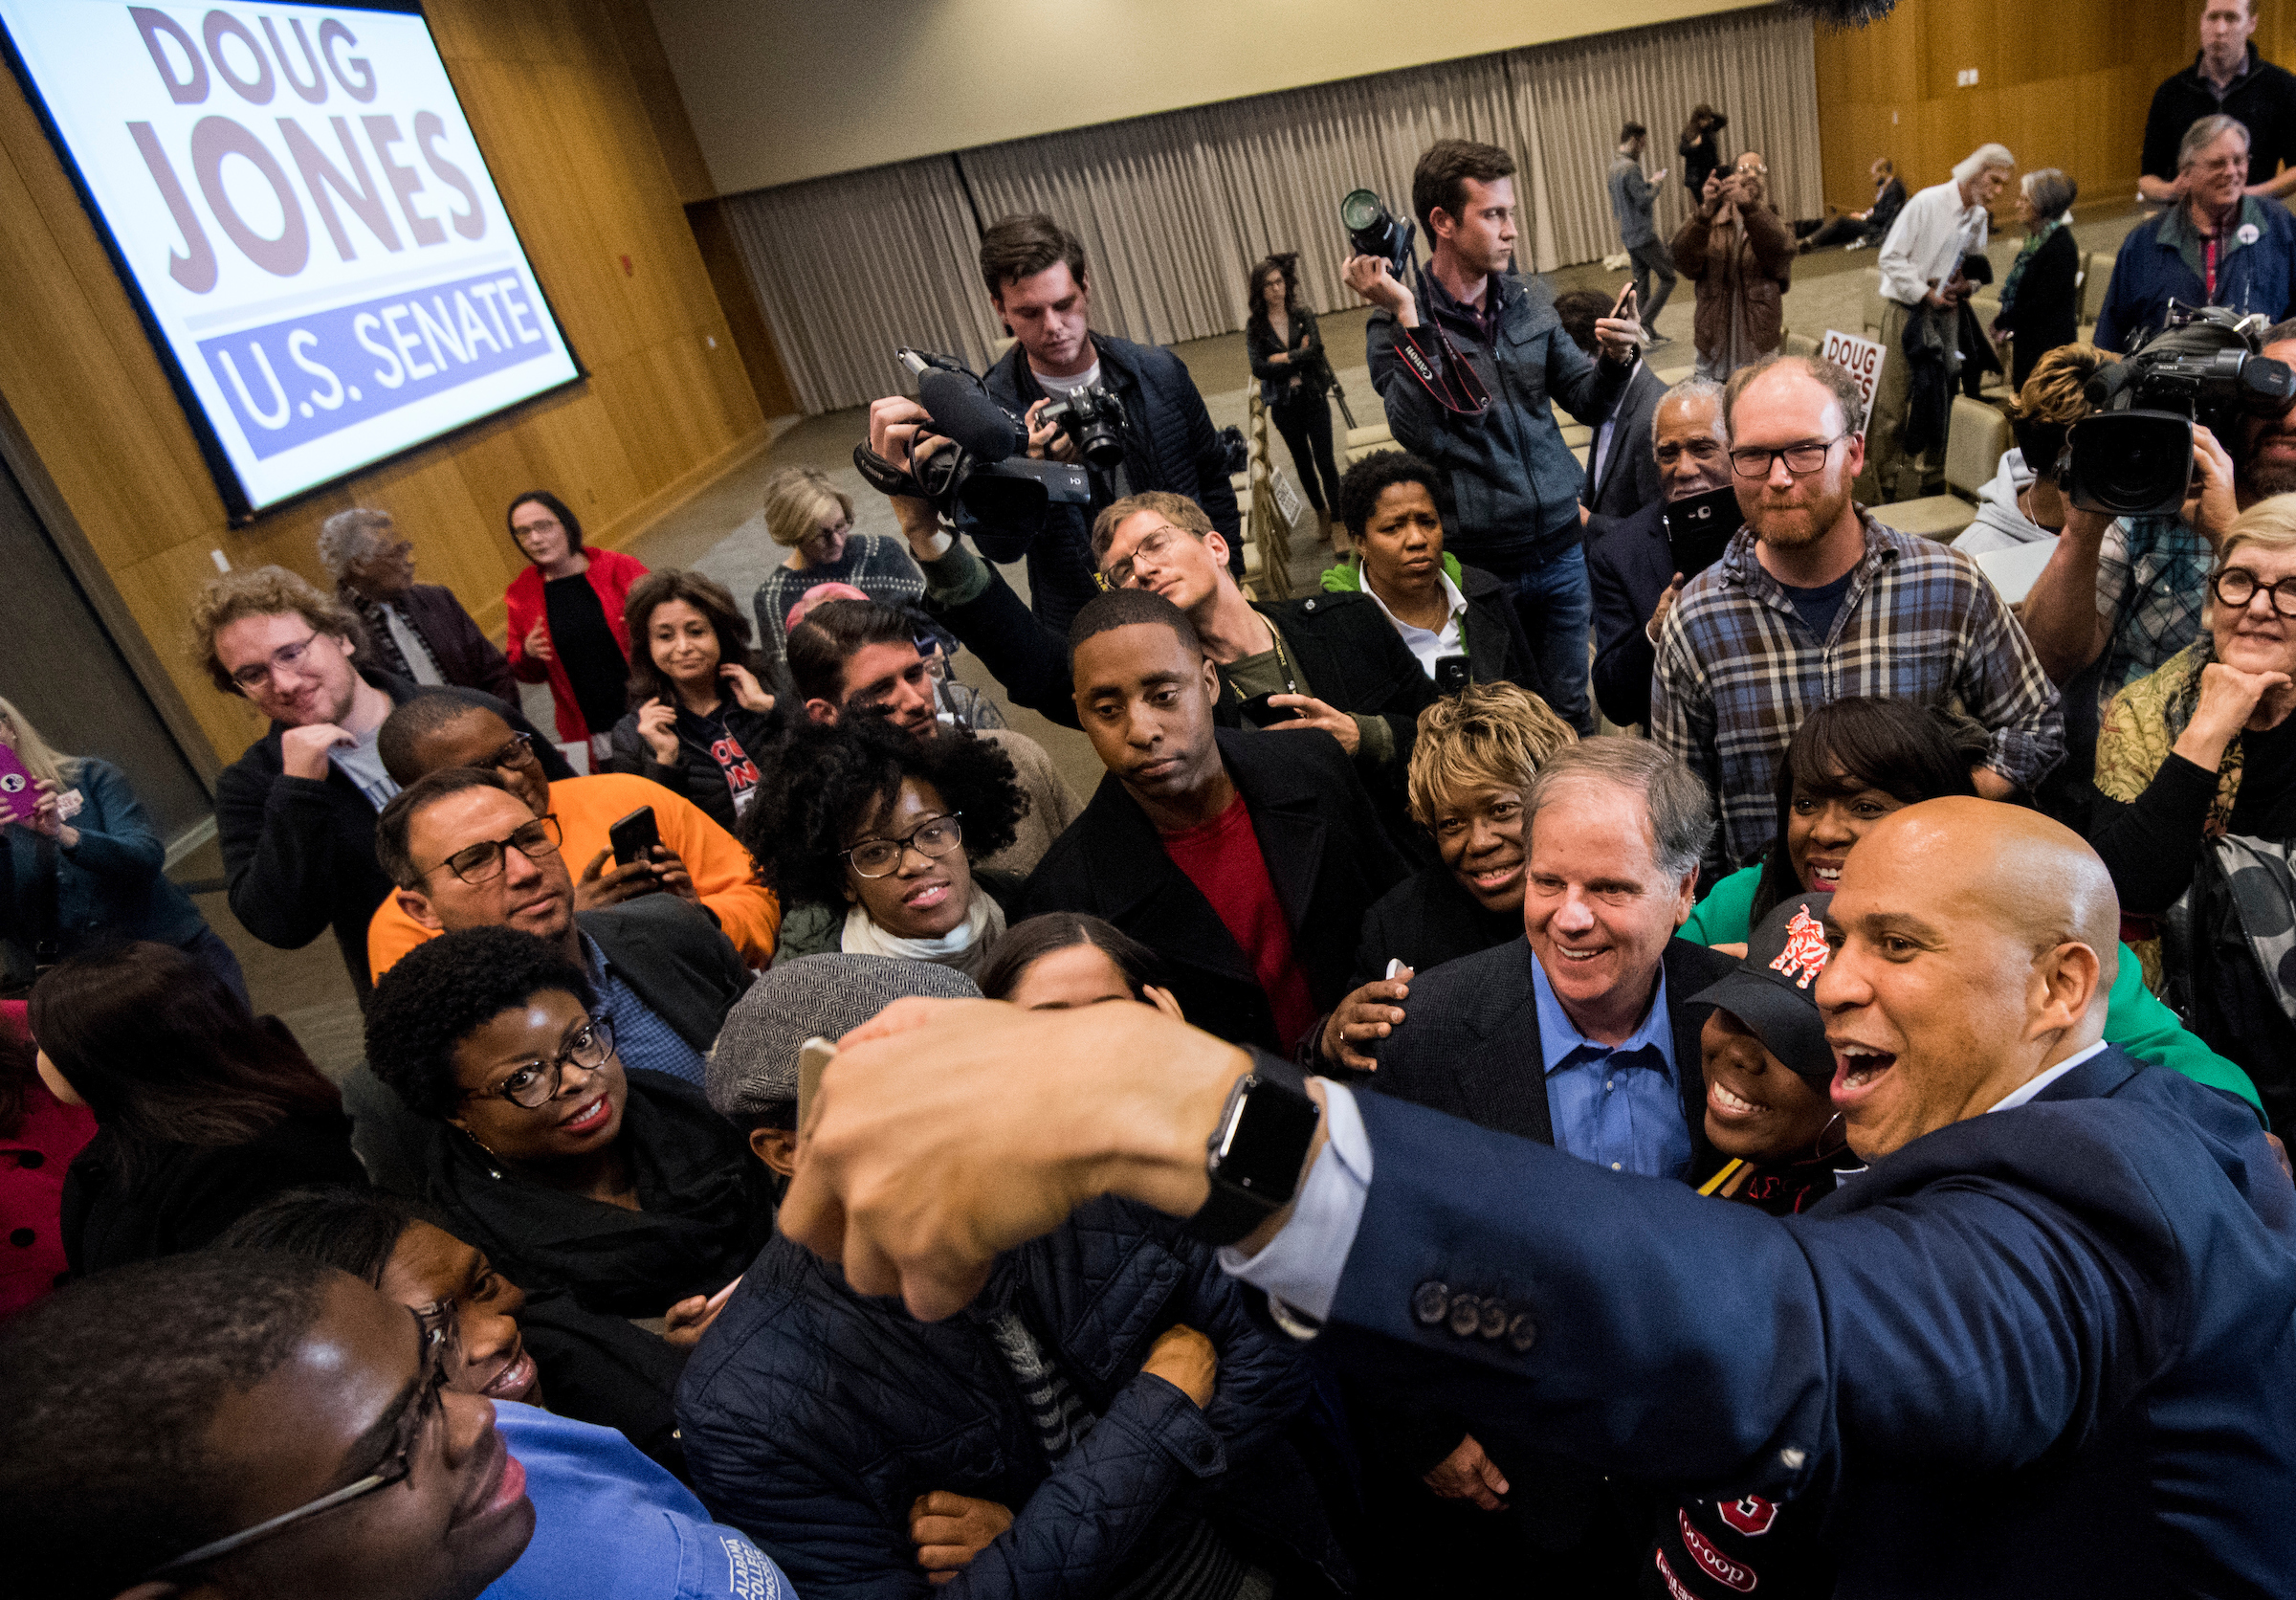 Sen. Cory Booker, D-N.J., right, takes selfie photos with Rep. Terri Sewell, D-Ala., and Democratic candidate for Senate Doug Jones at the end of a campaign rally for Jones at Alabama State University in Montgomery, Ala., on Saturday, Dec. 9, 2017. (Bill Clark/CQ Roll Call file photo)